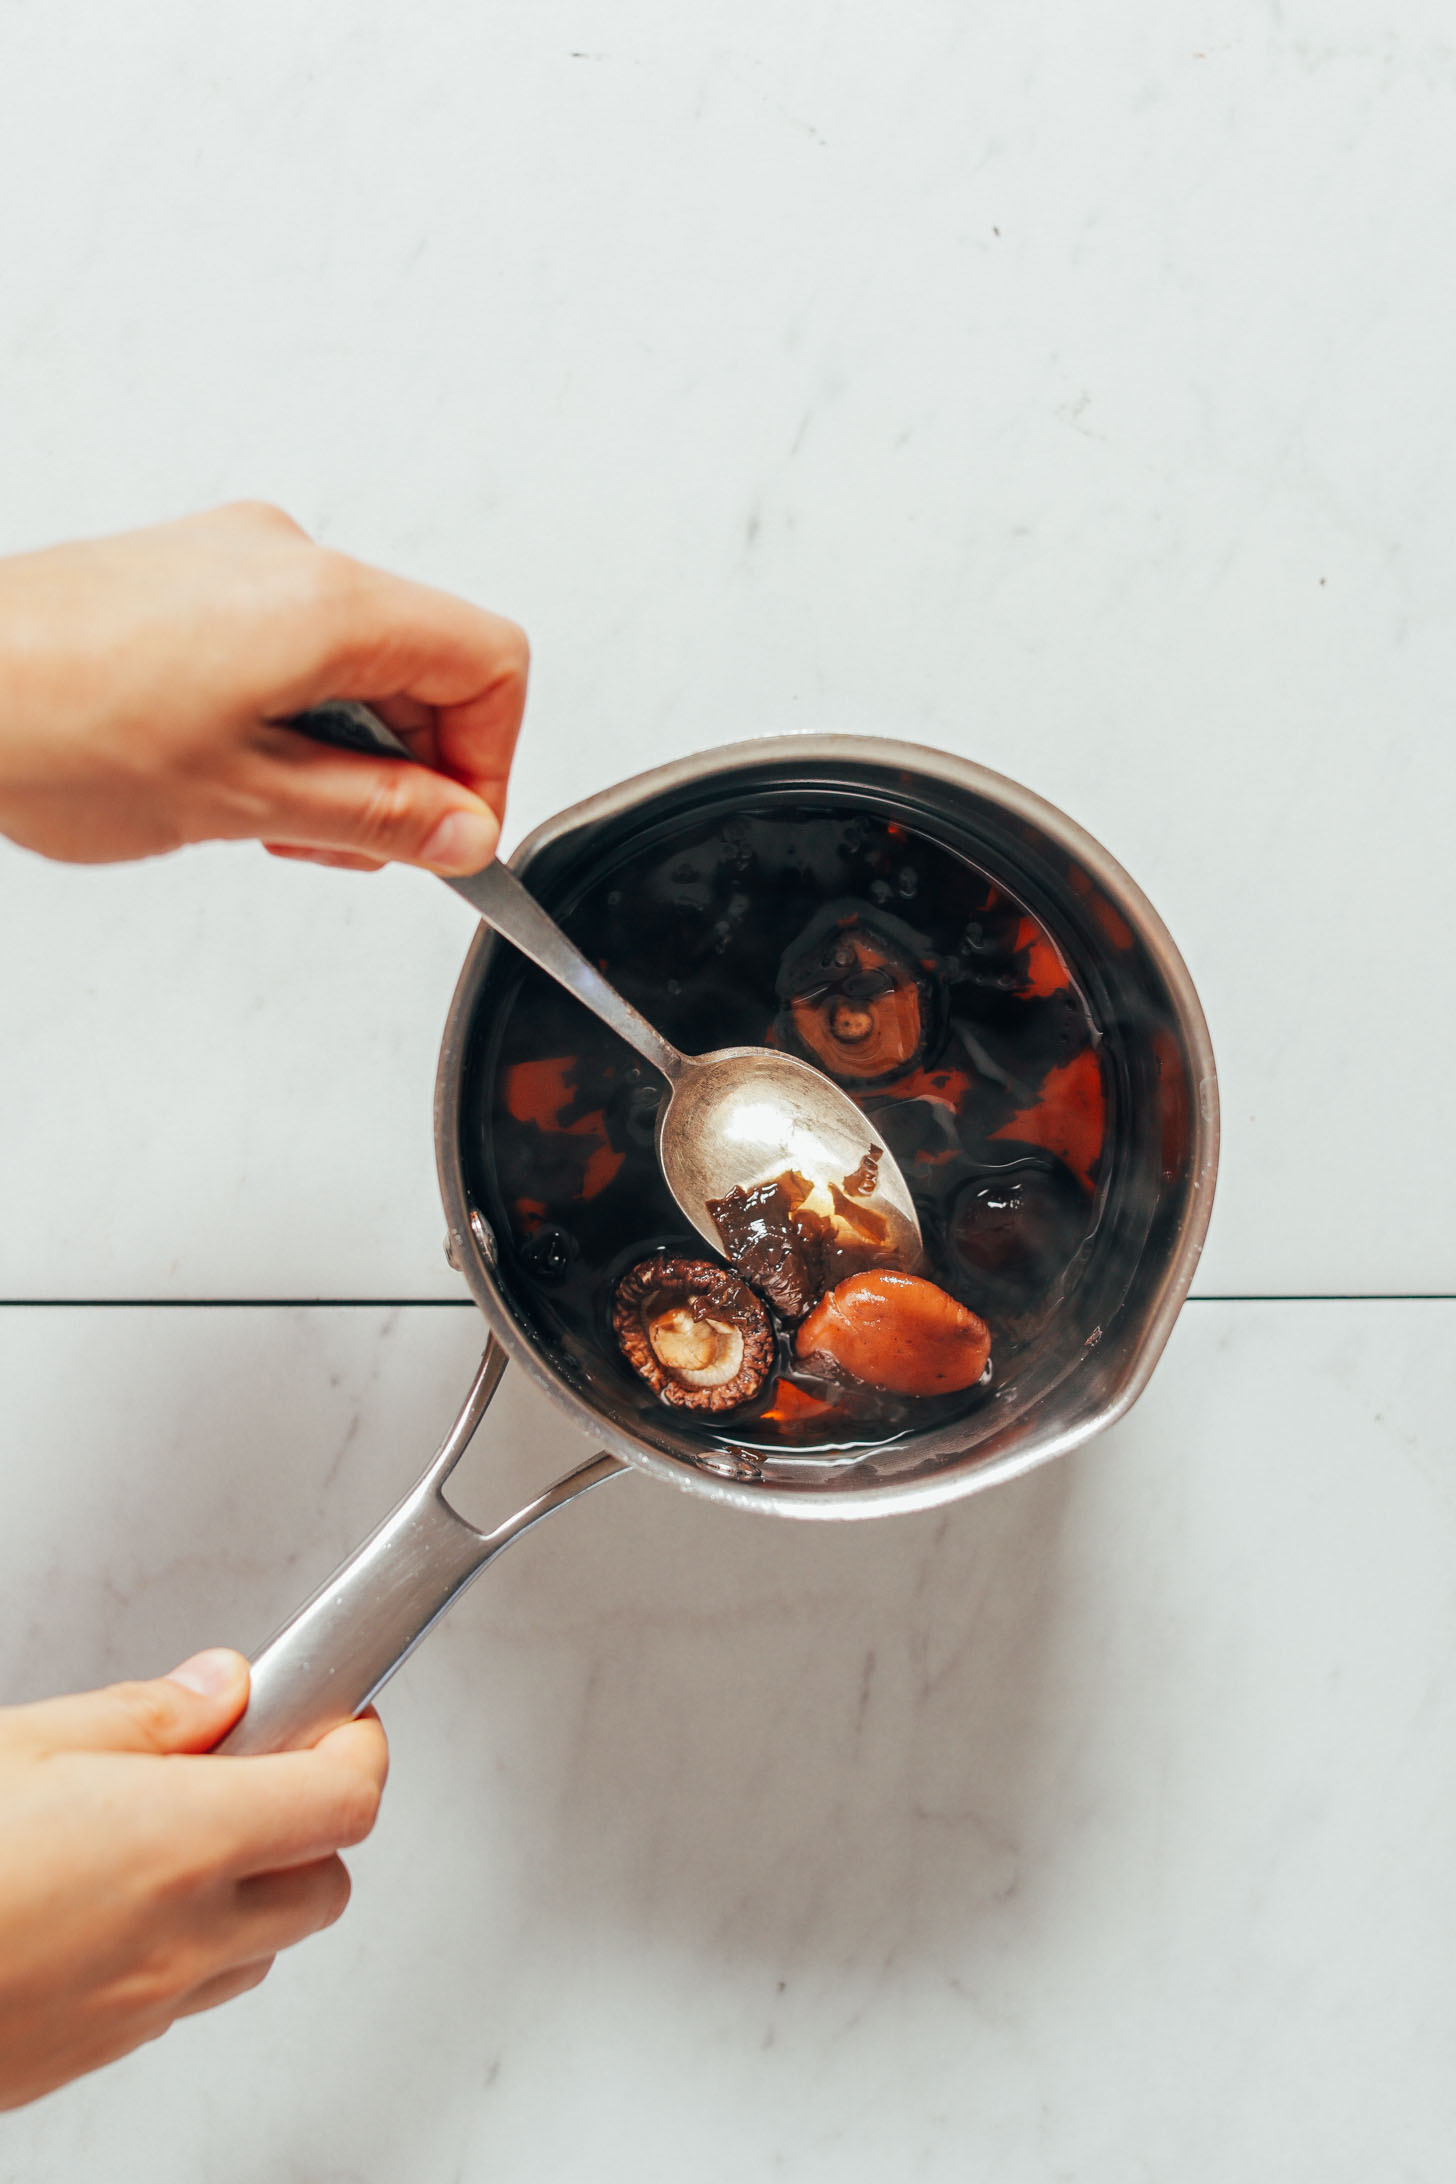 Using a spoon to mix a saucepan with ingredients for our vegetarian Fish Sauce recipe